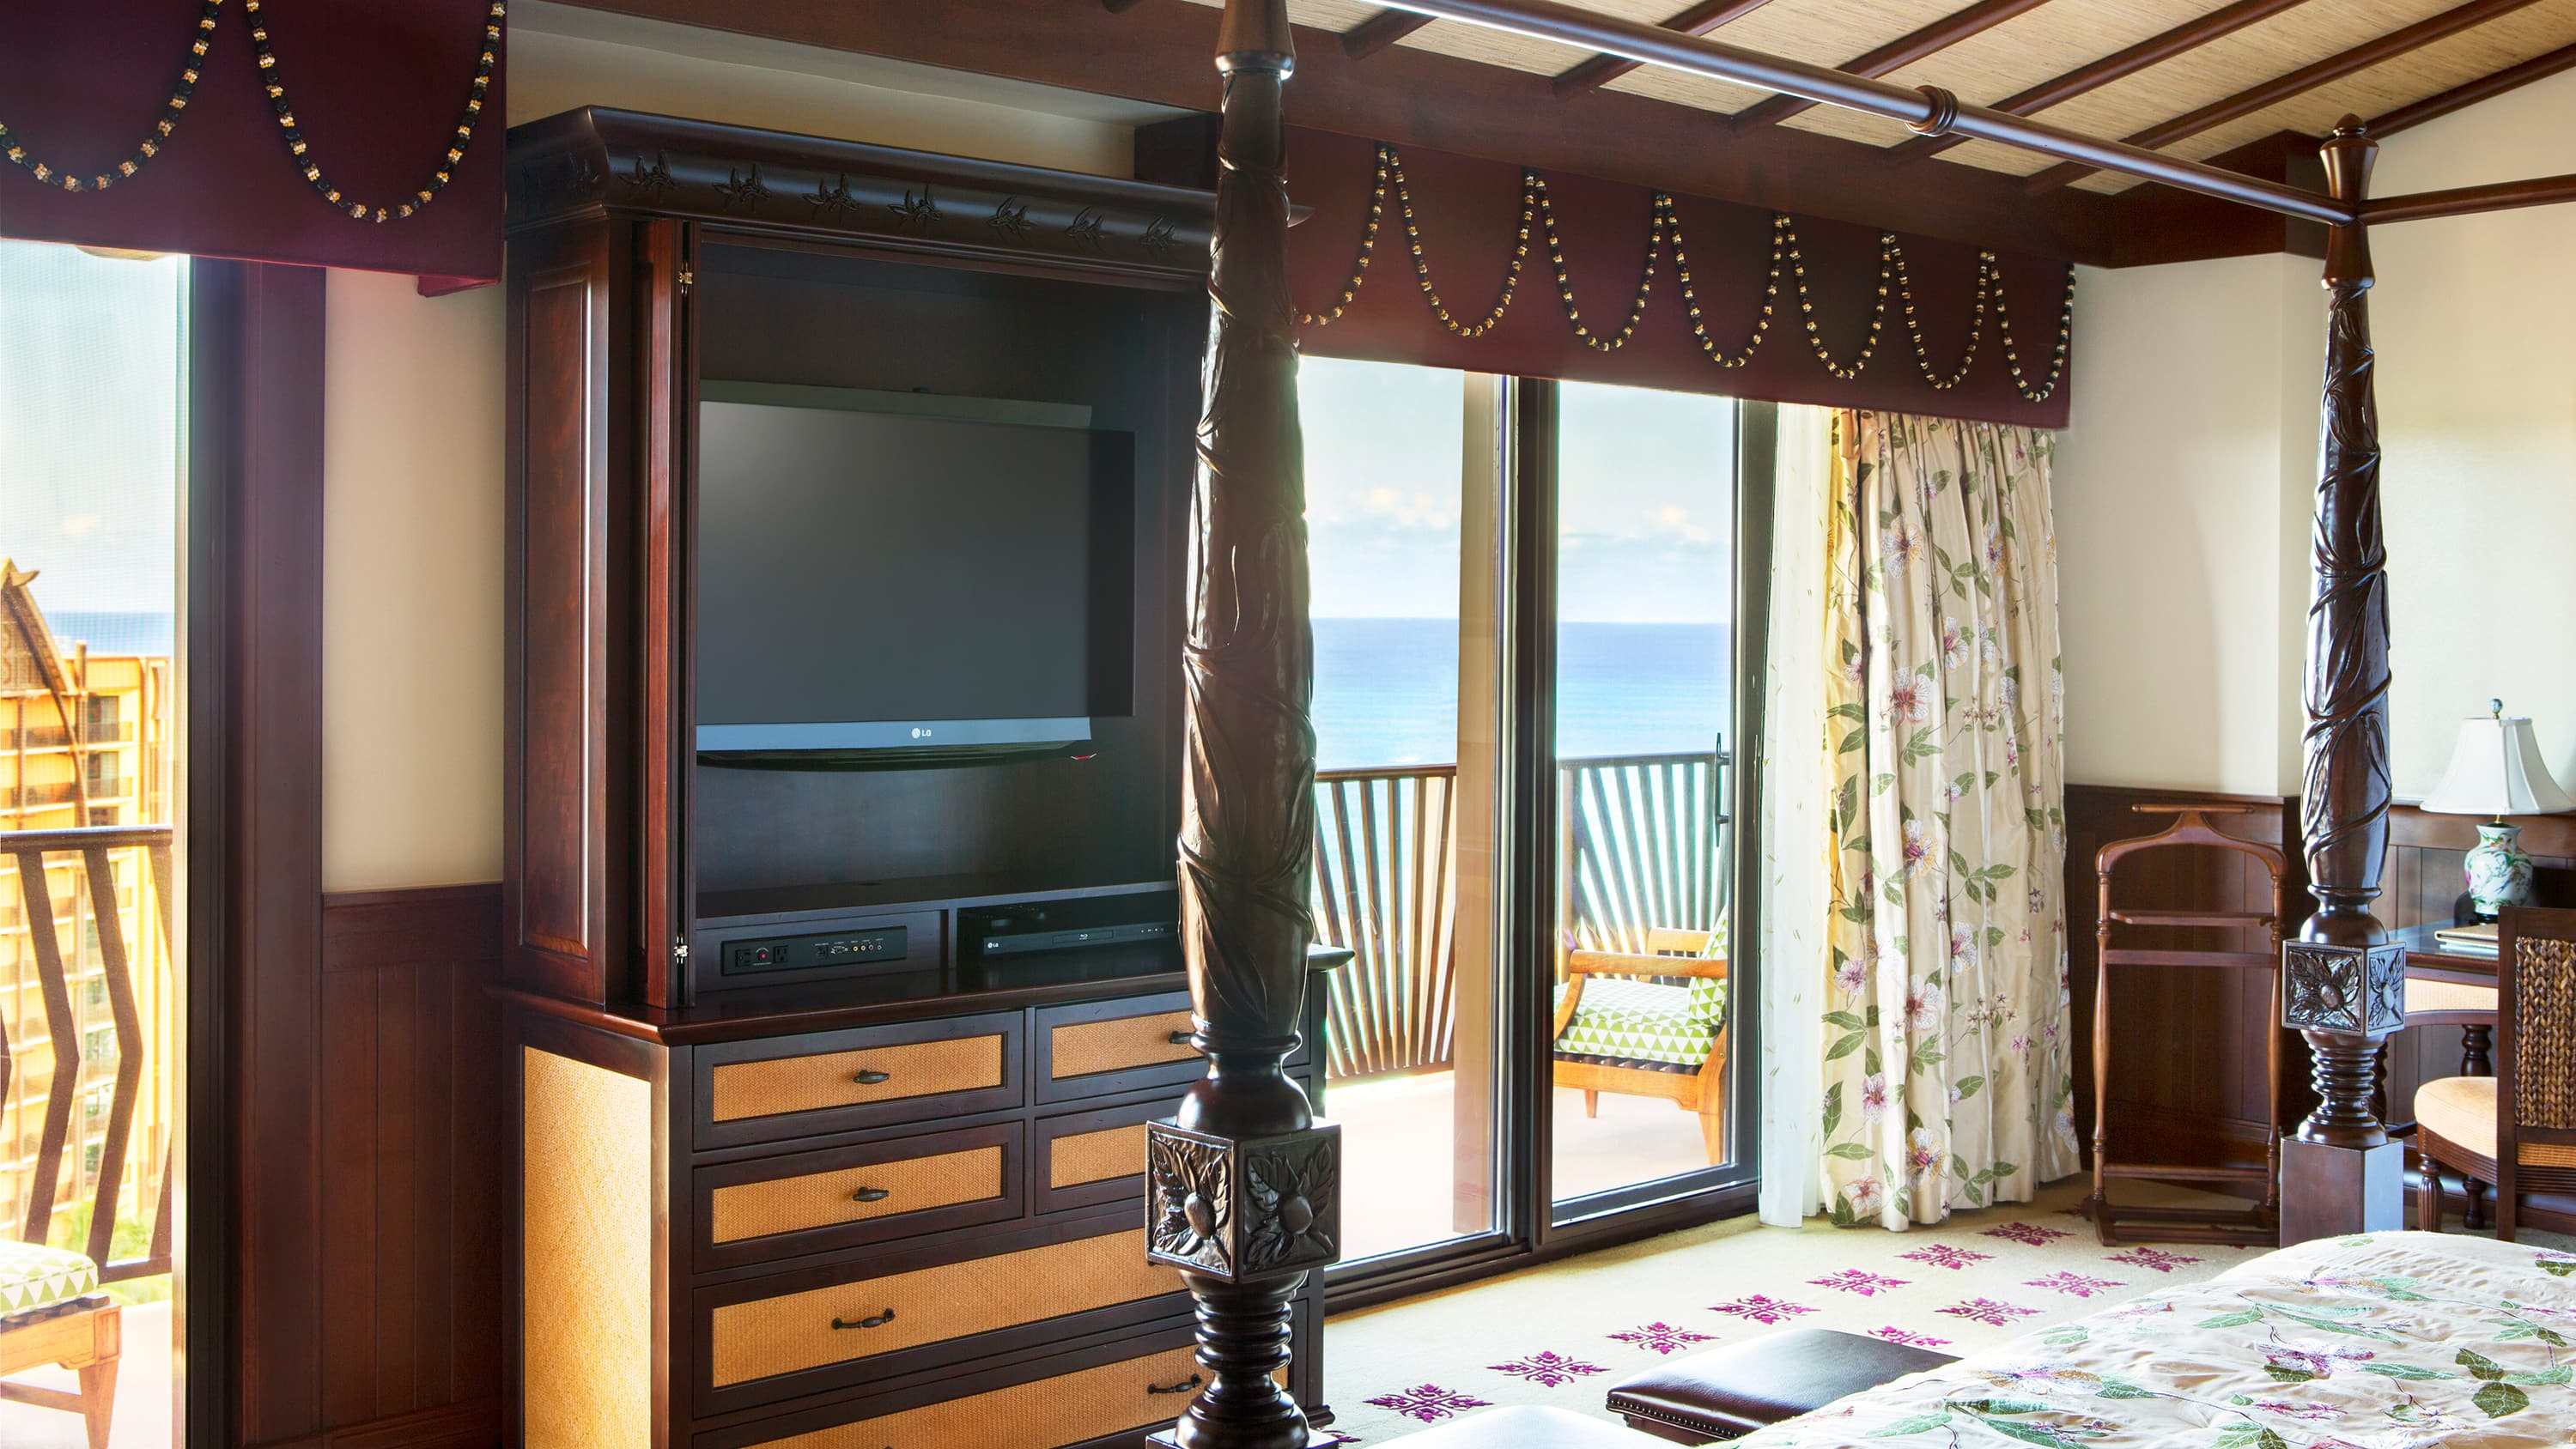 A room with a four poster bed, a TV, an armoire, a chair, a lamp and balcony access